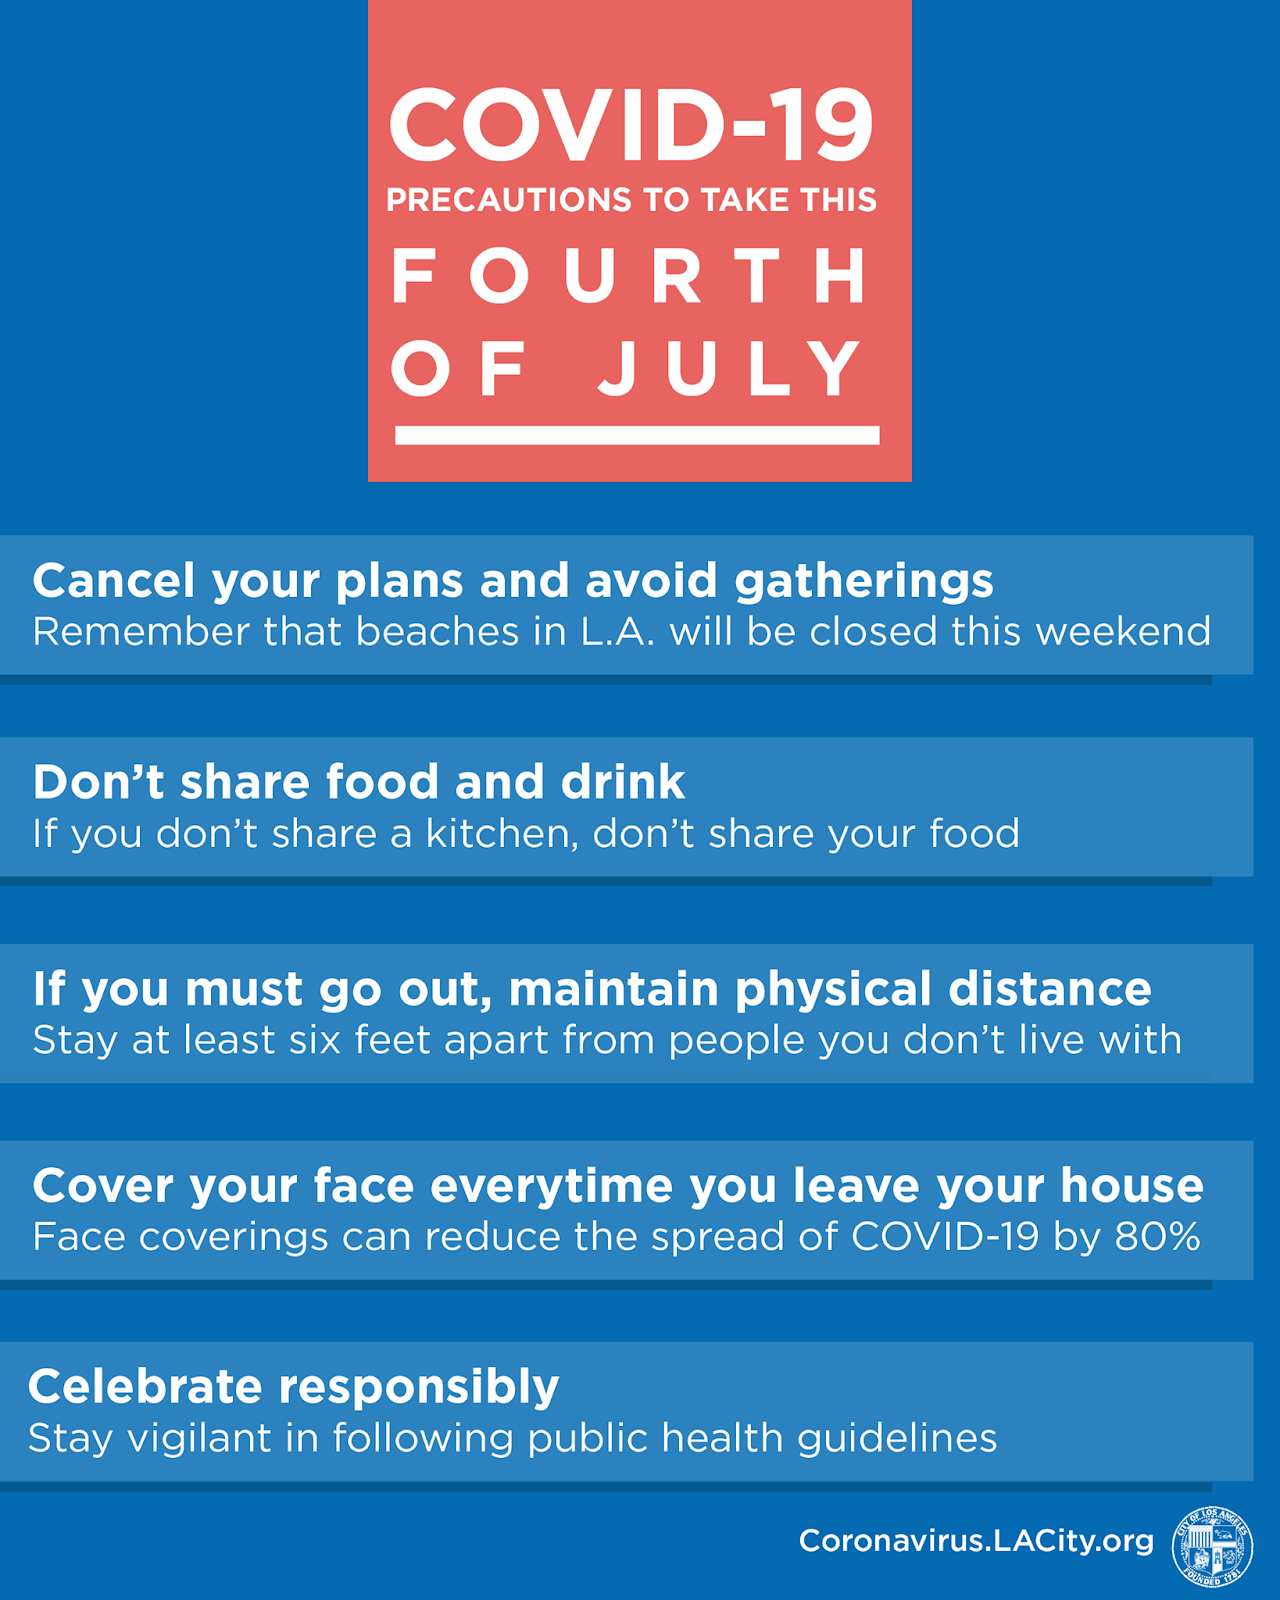 COVID-19 Fourth of July Precautions